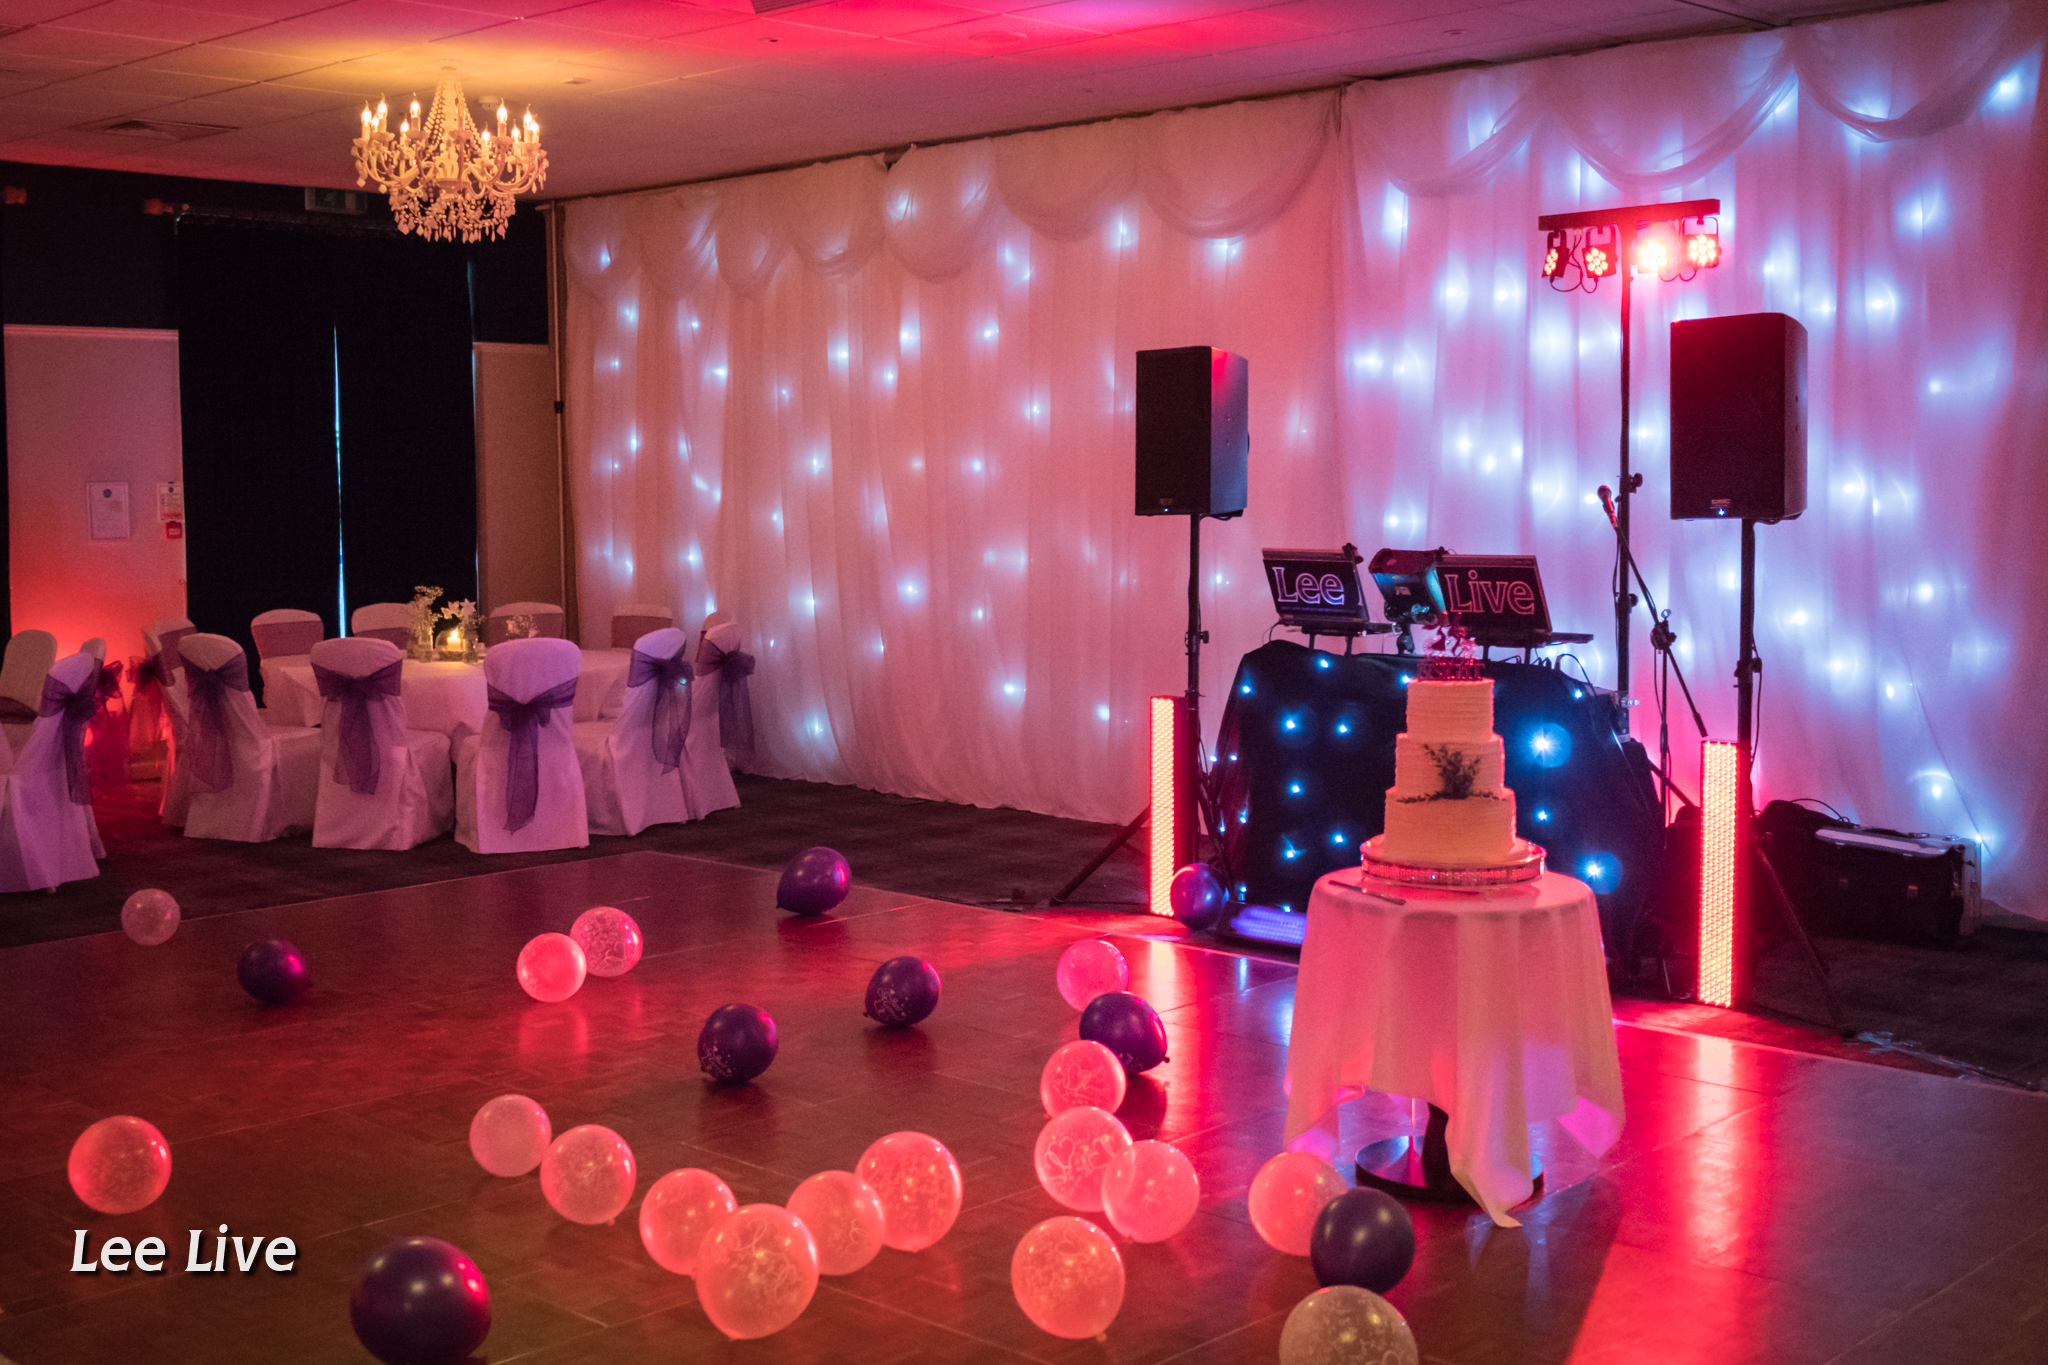 venues recommendedlee live: wedding dj